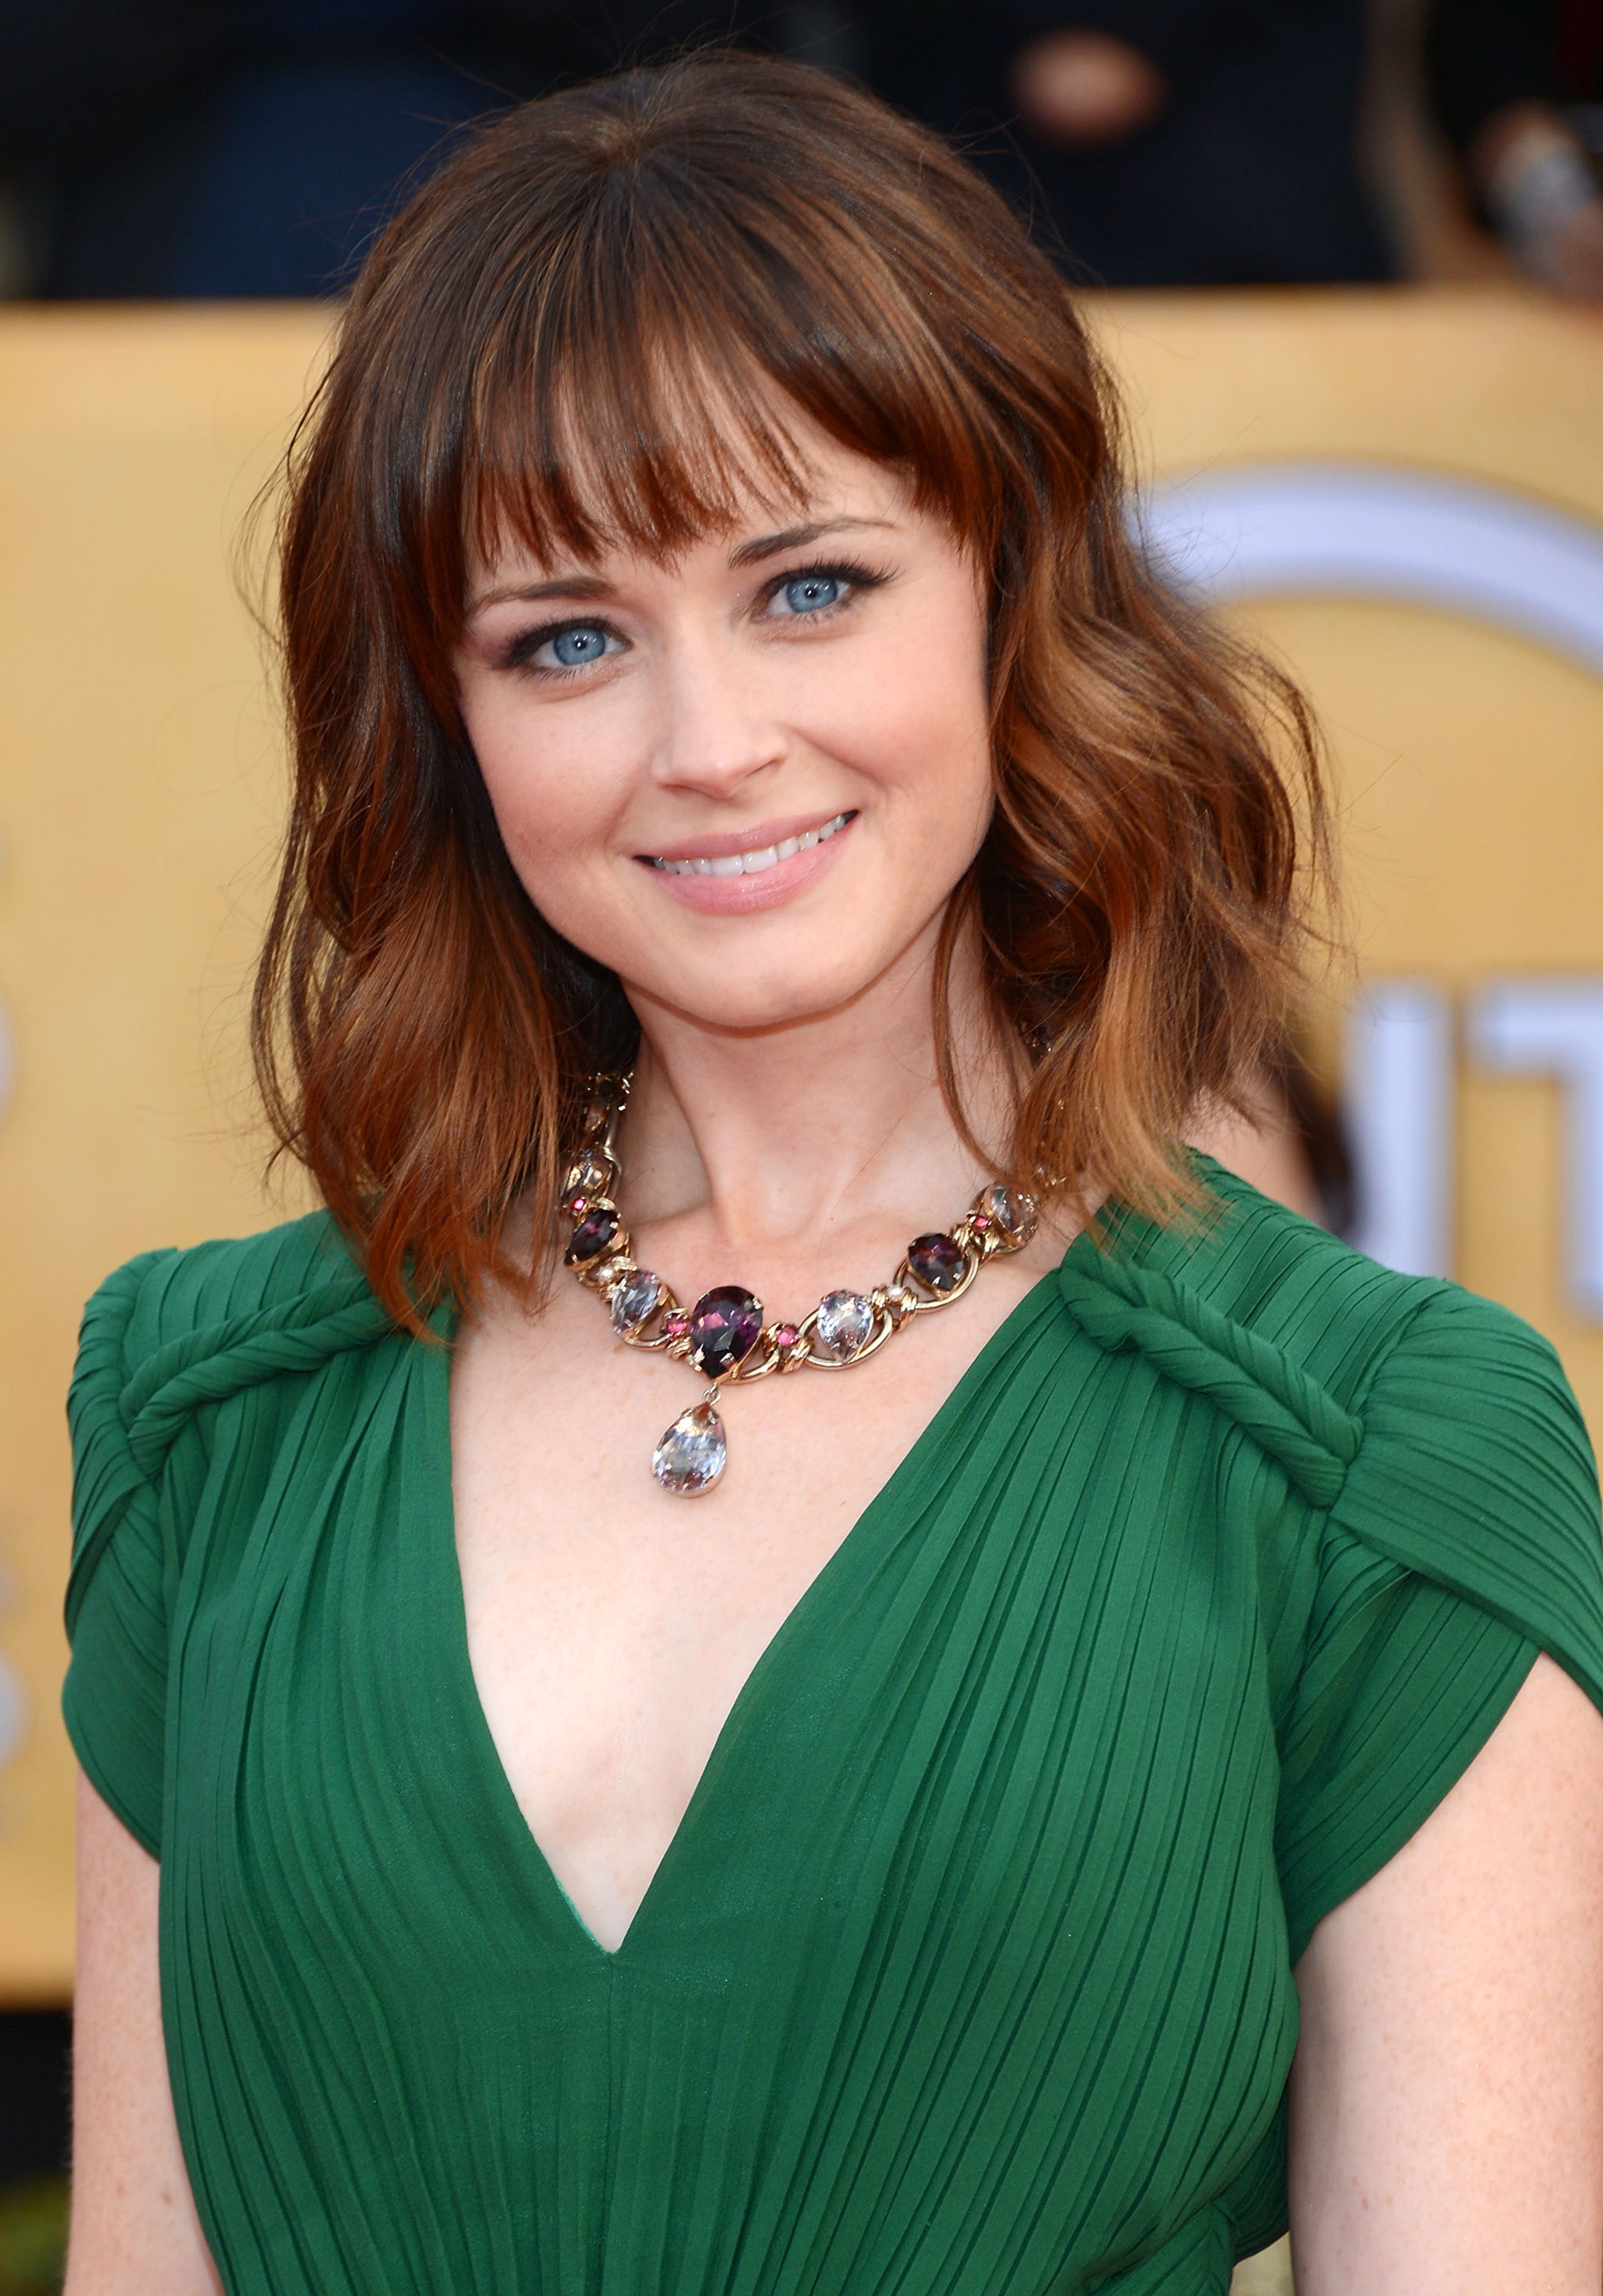 gilmore girls 2014 gallery 13 gorgeous alexis bledel dvdbash